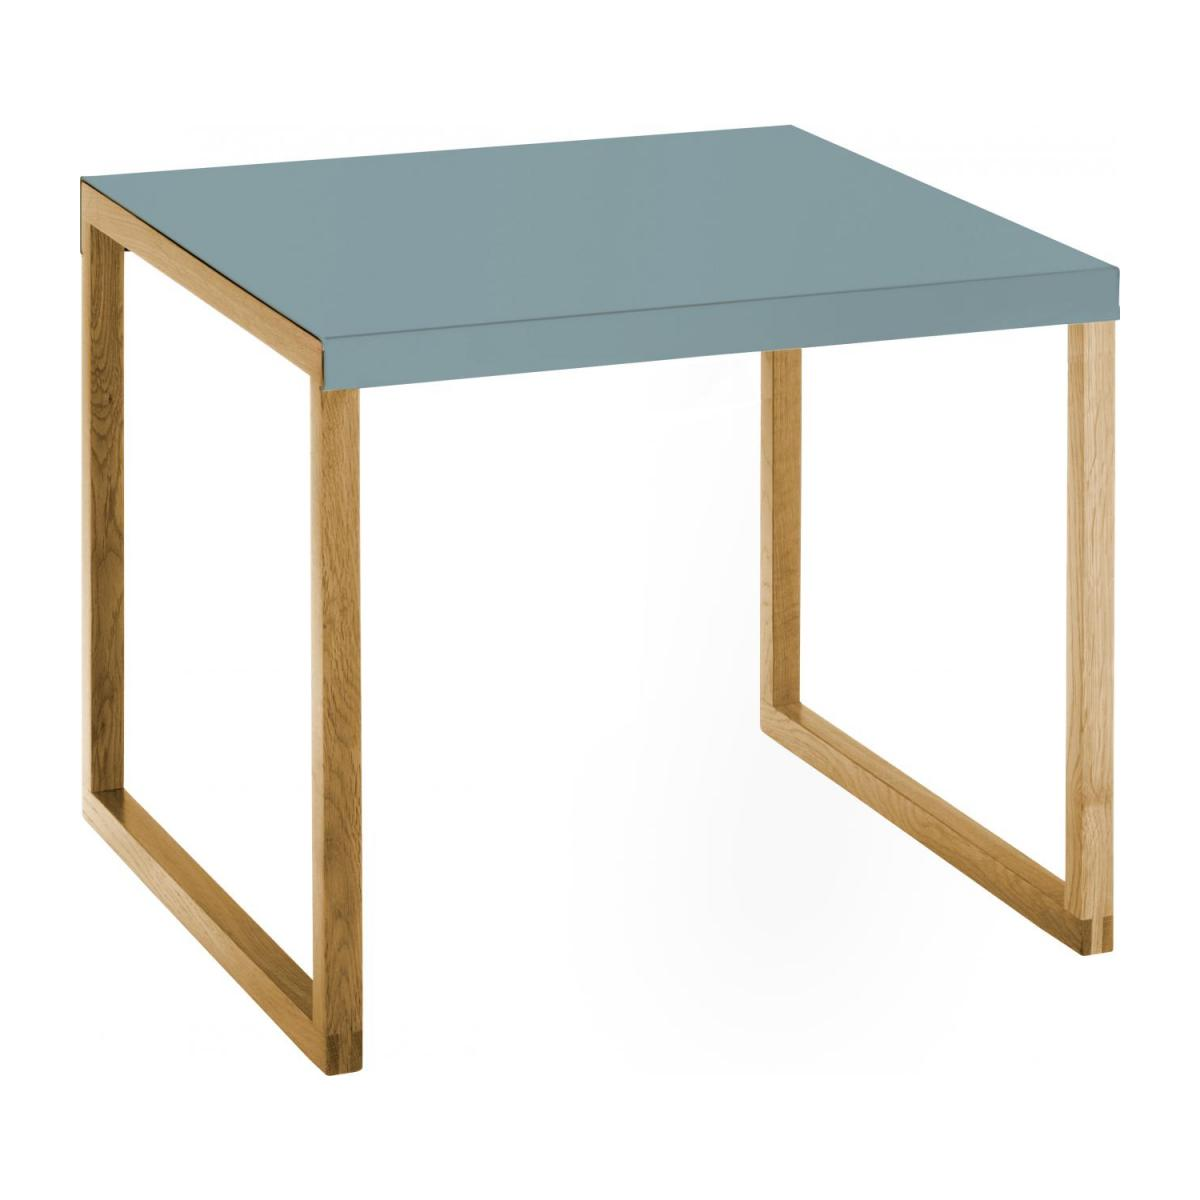 Table d'appoint - Bleu orage n°1